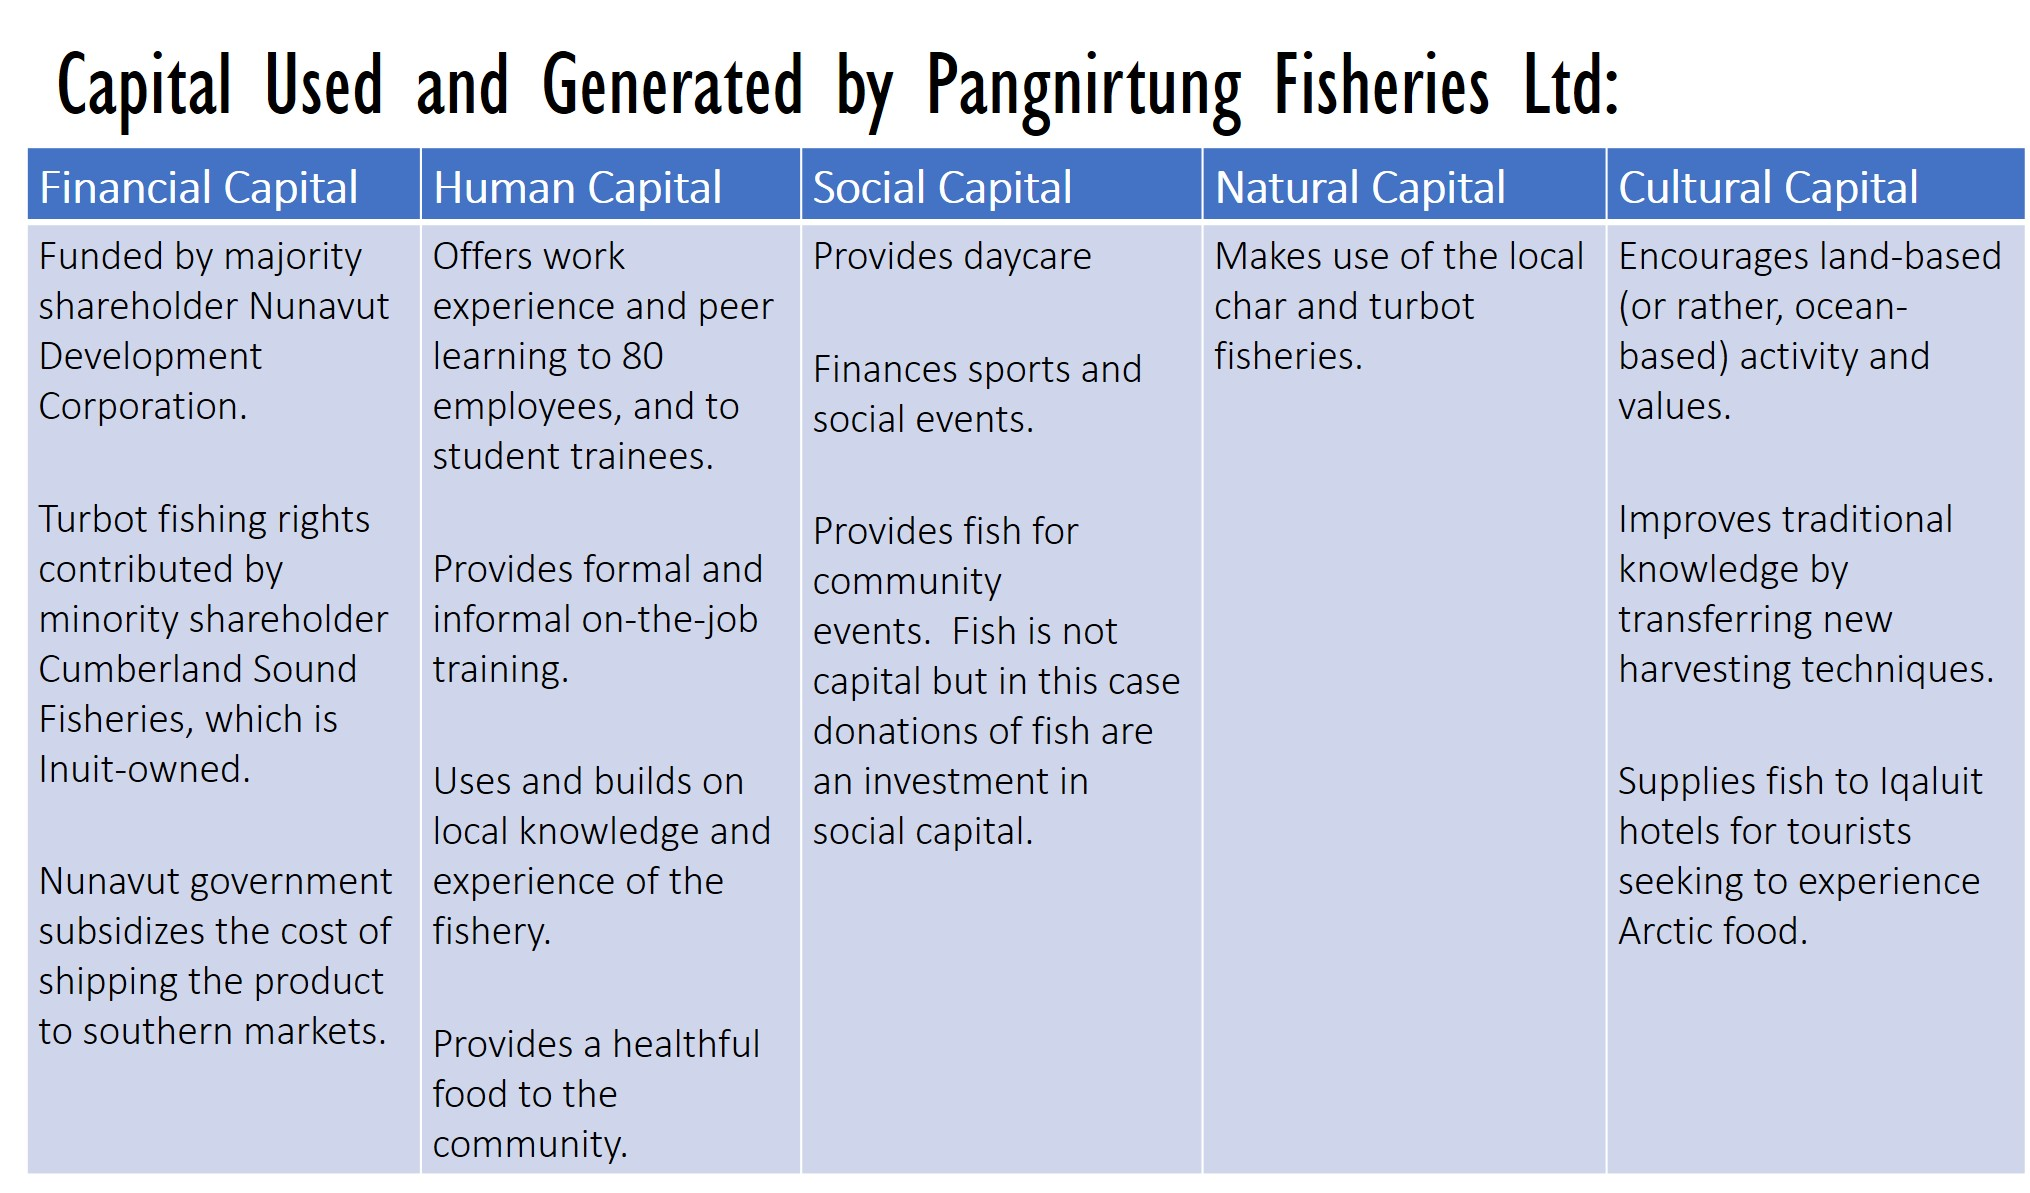 Capital Used and Generated by Pangnirtung Fisheries Ltd. Adapted from Table 5.2 in Thierry (2015) [176]